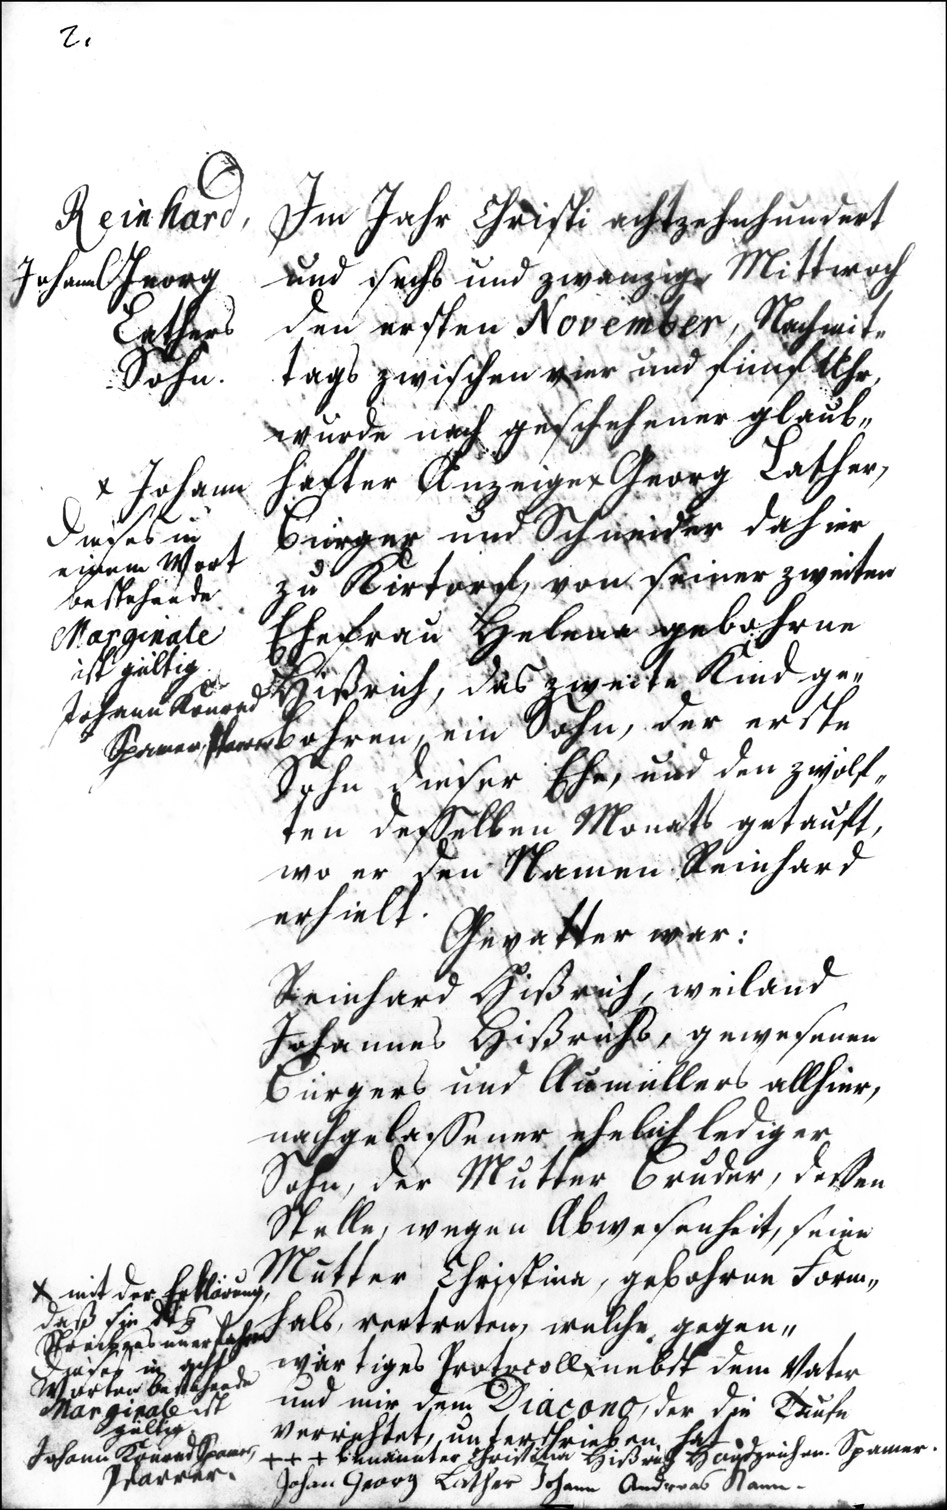 The Birth and Baptismal Record of Reinhard Lather - 1826